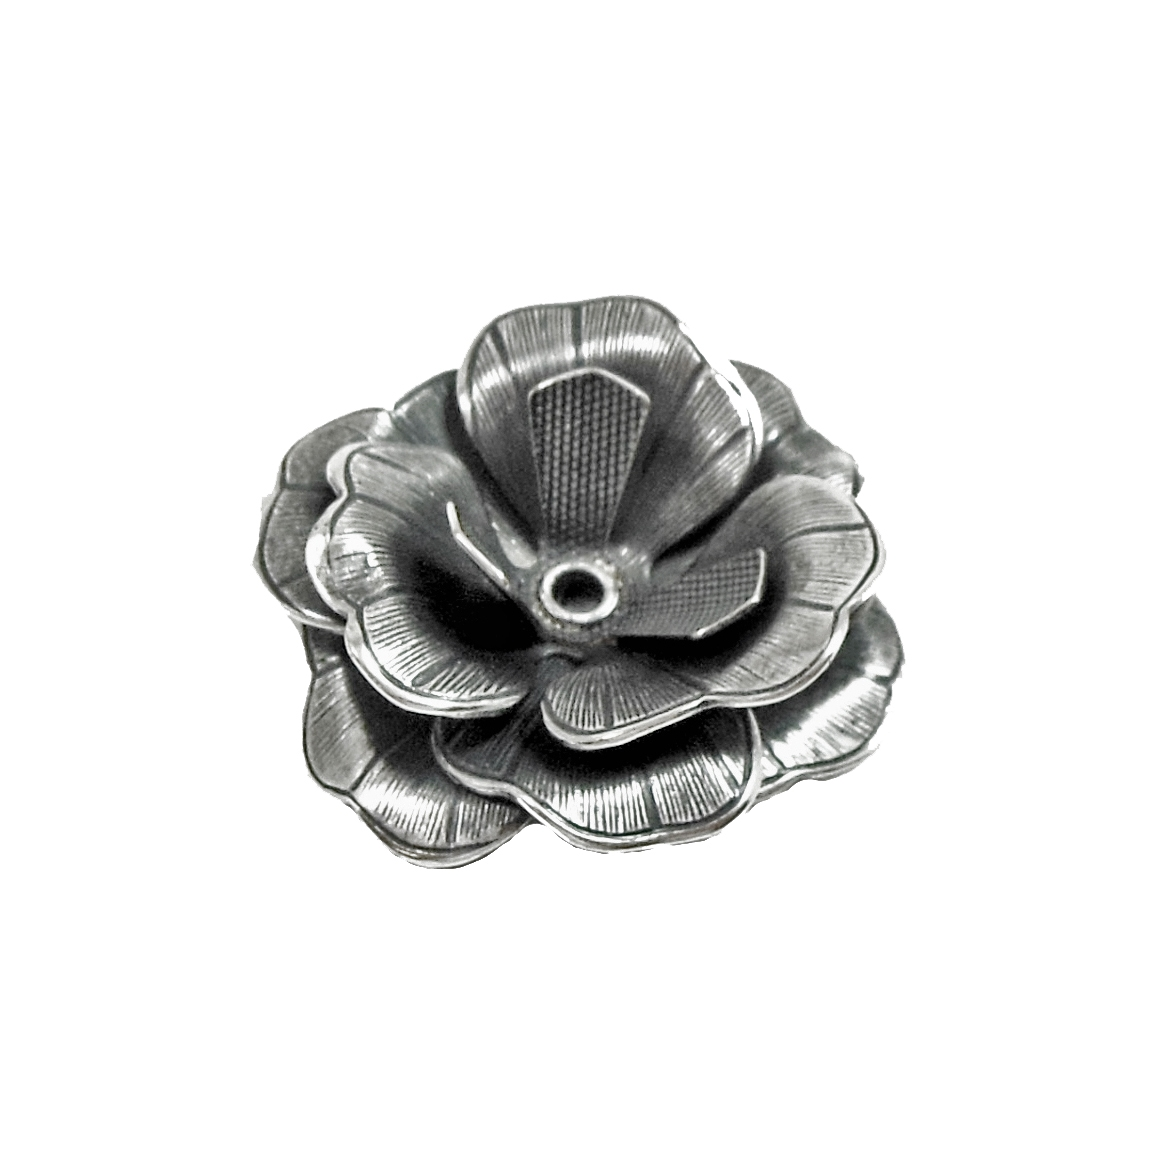 tea rose, 09111, silverware silverplate, layered flower, flowers, brass flower, plated flower, Bsue Boutiques, jewelry making, jewelry supplies, 24mm, rose, dimensional flower, silver flower, silver rose